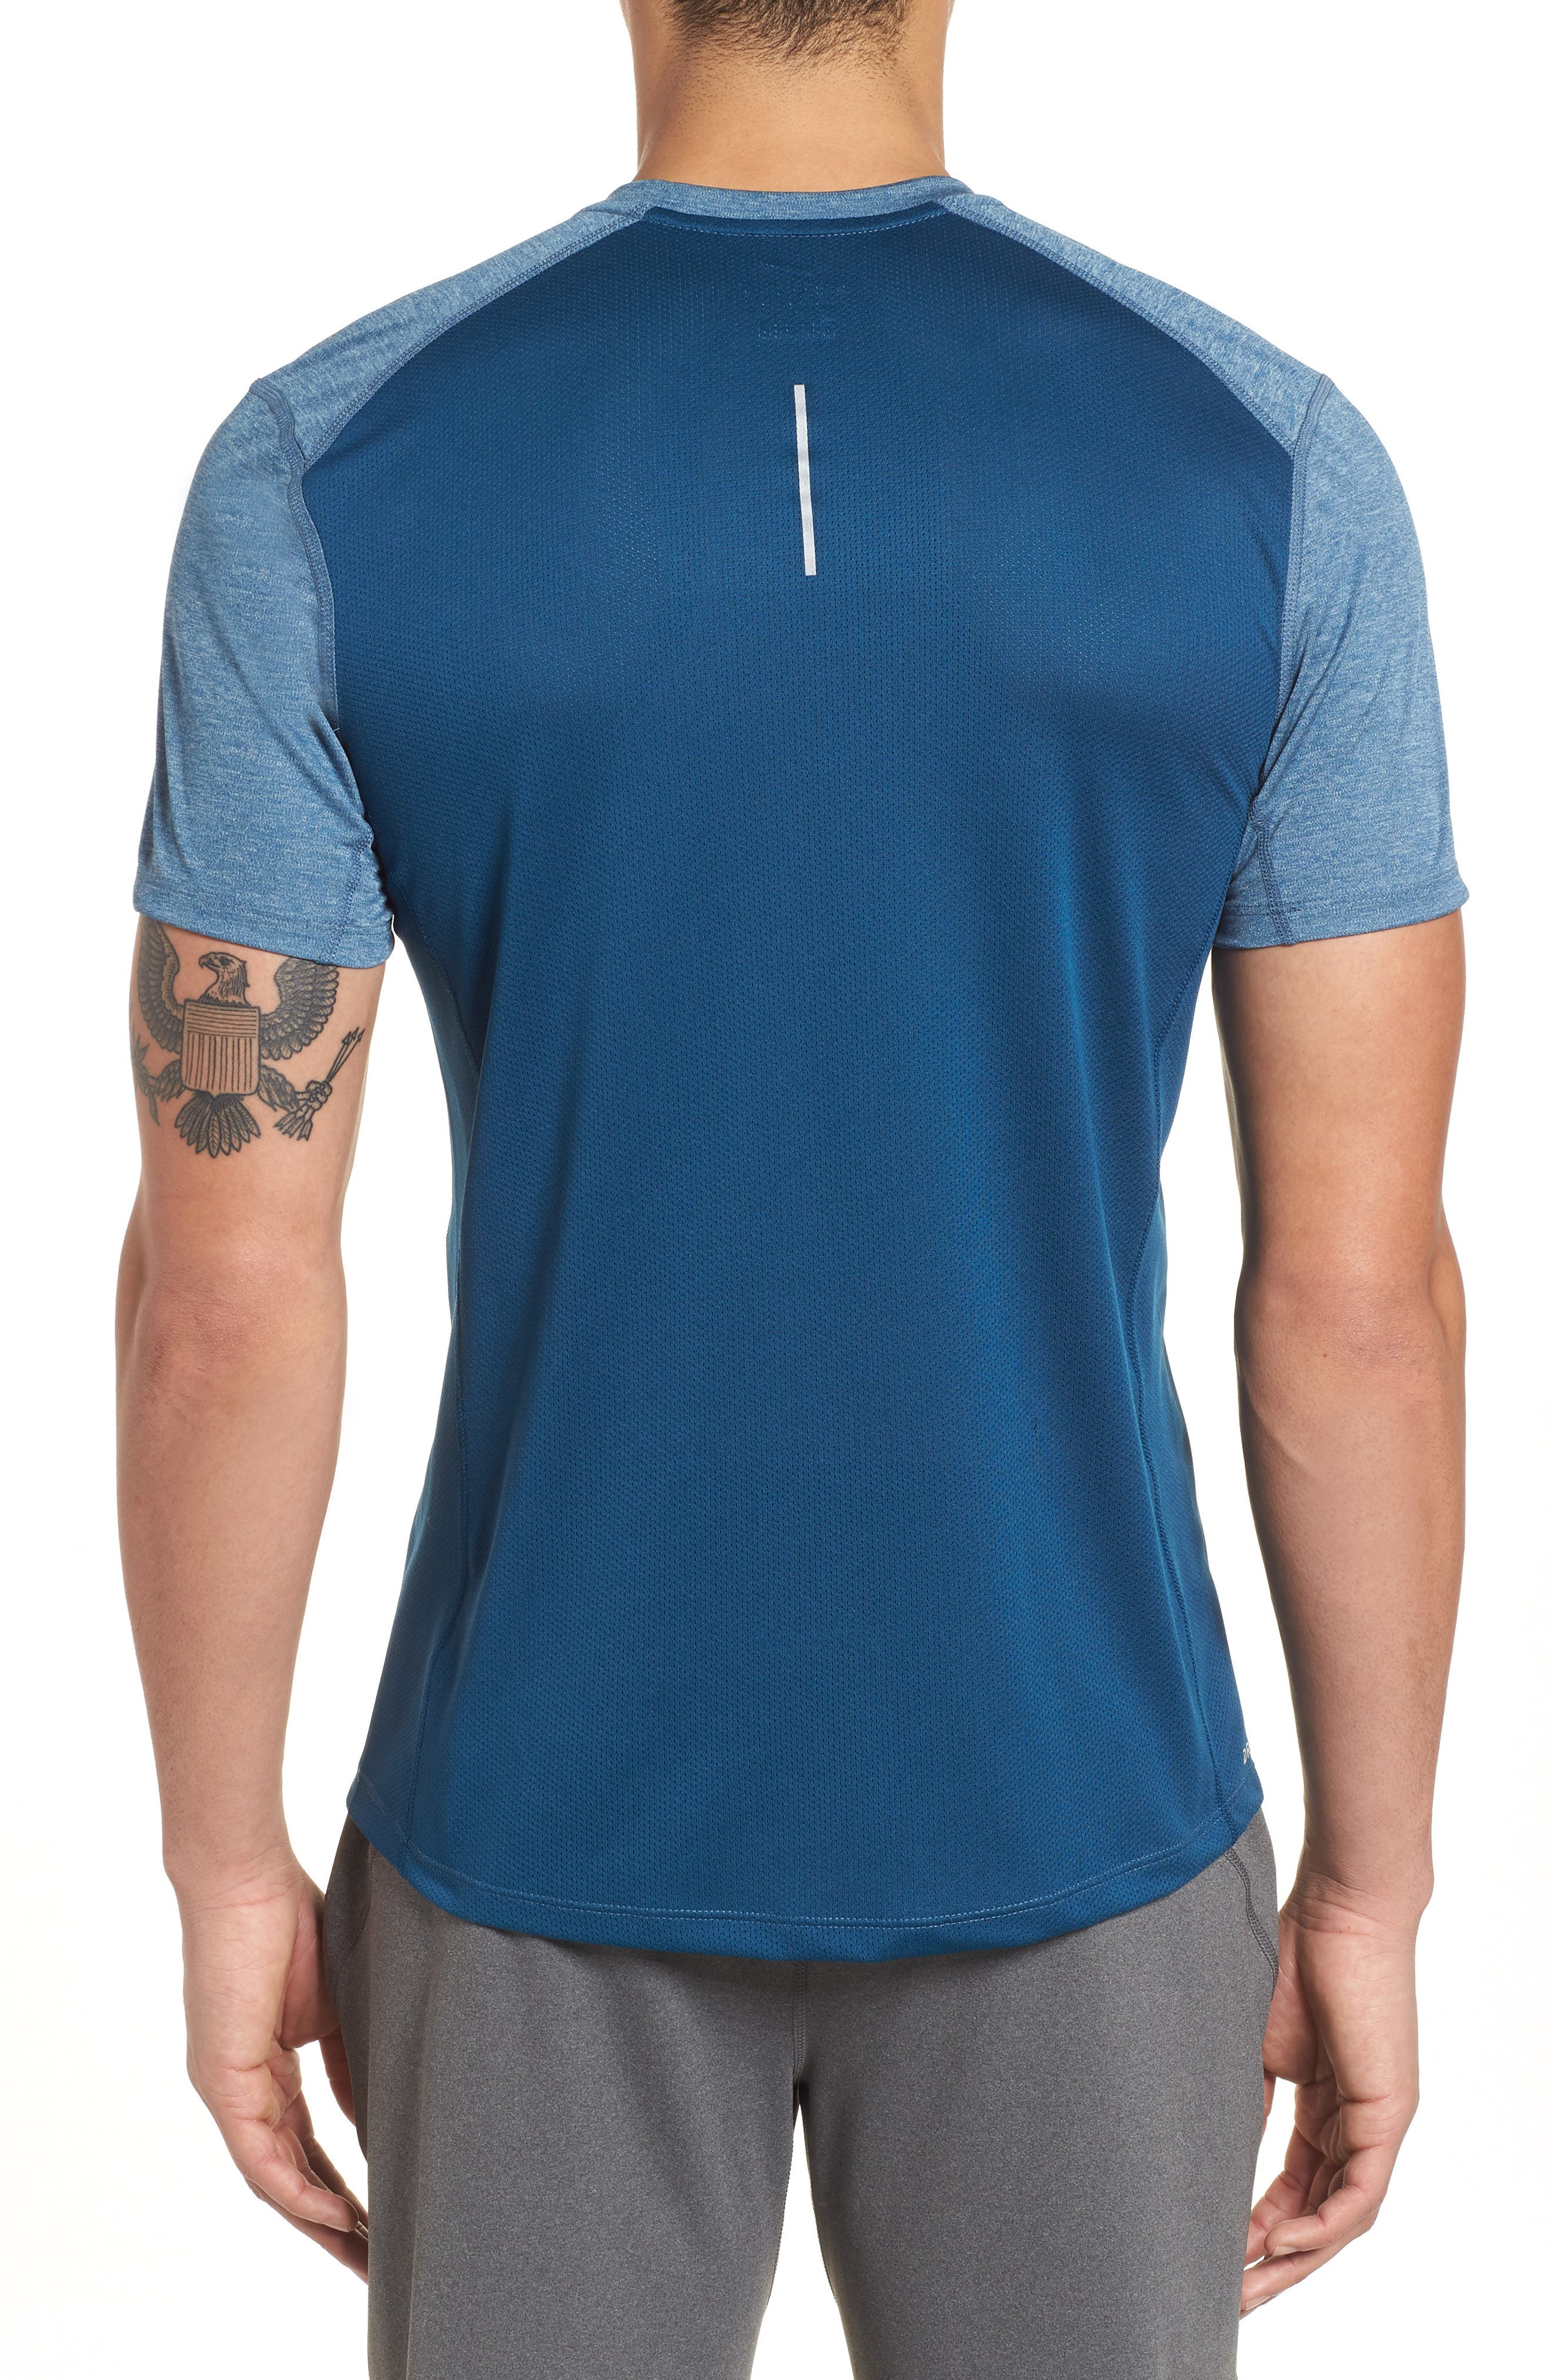 Dry Miler Running Top,                             Alternate thumbnail 2, color,                             Blue Force/ Heather